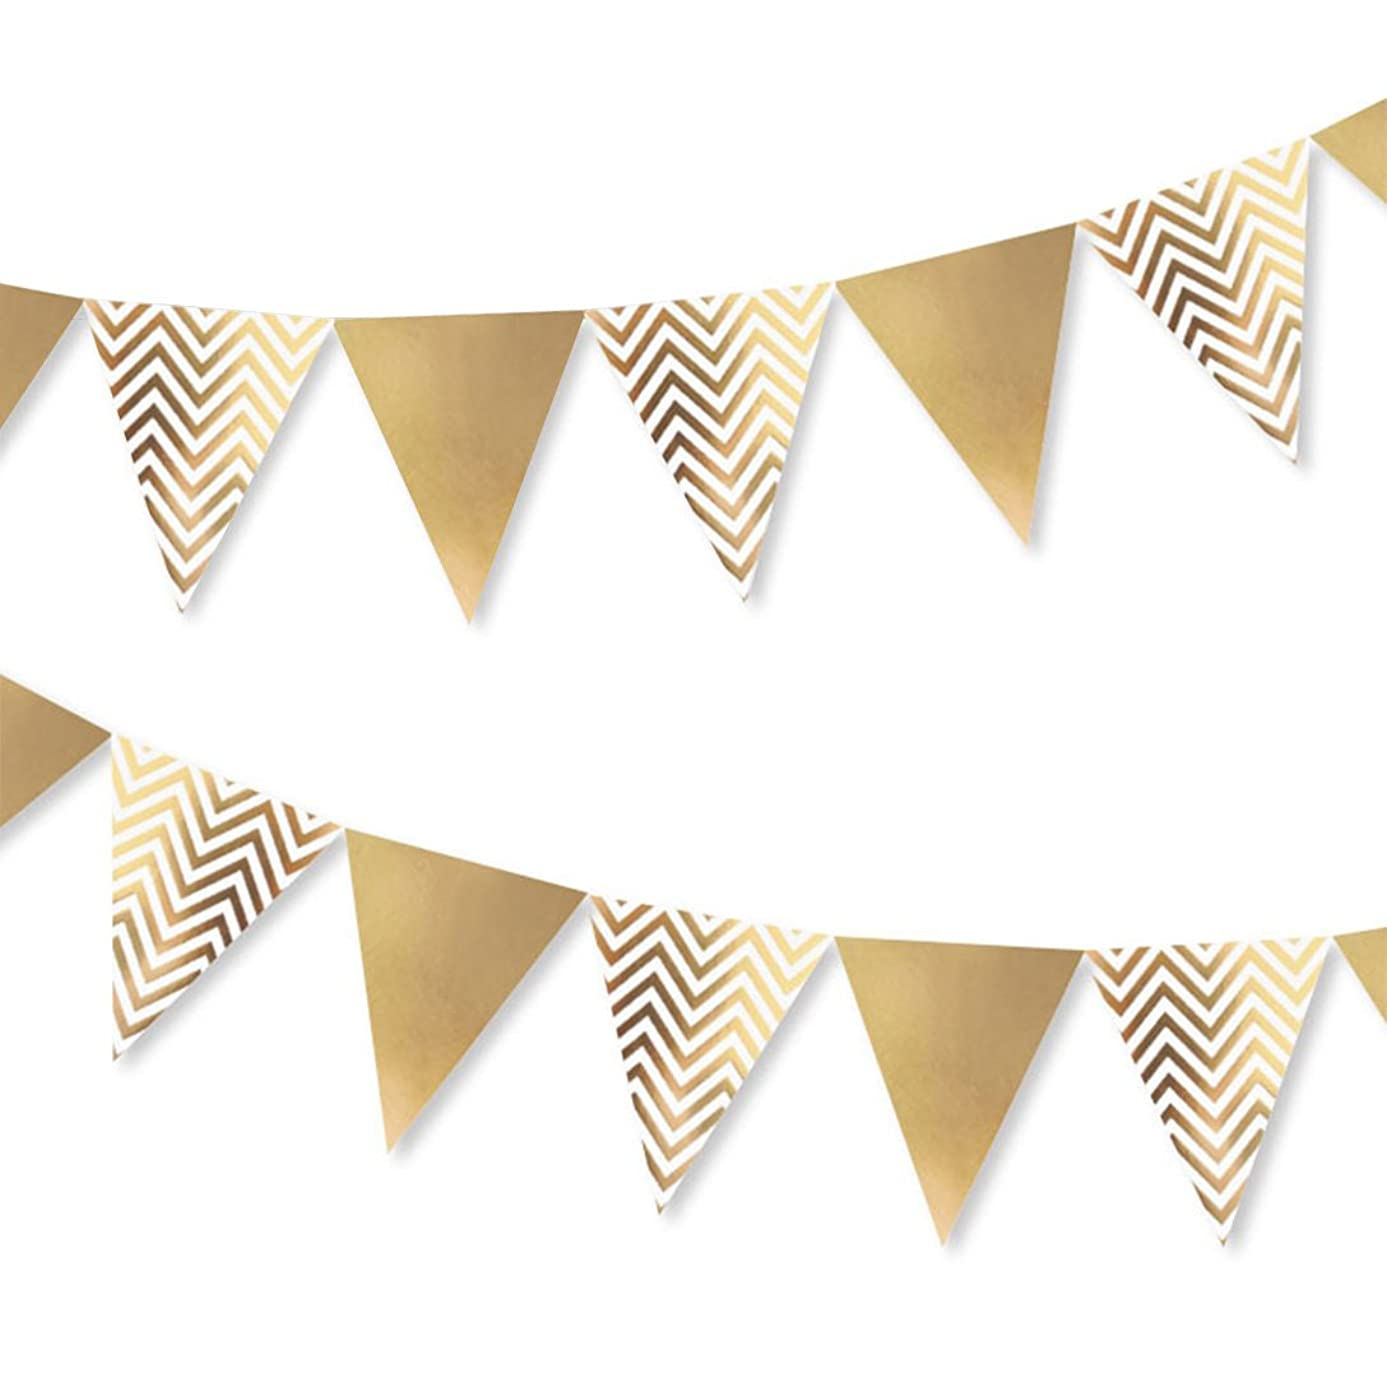 Sparkly Paper Pennant Banner, Glitter Triangle Flags Bunting Pennant Banner 8.2 Feet, Langte Gold Paper Garland for Baby Shower, Birthday Wedding Christmas New Year Party Decor, Metallic Gold, 1 Pack